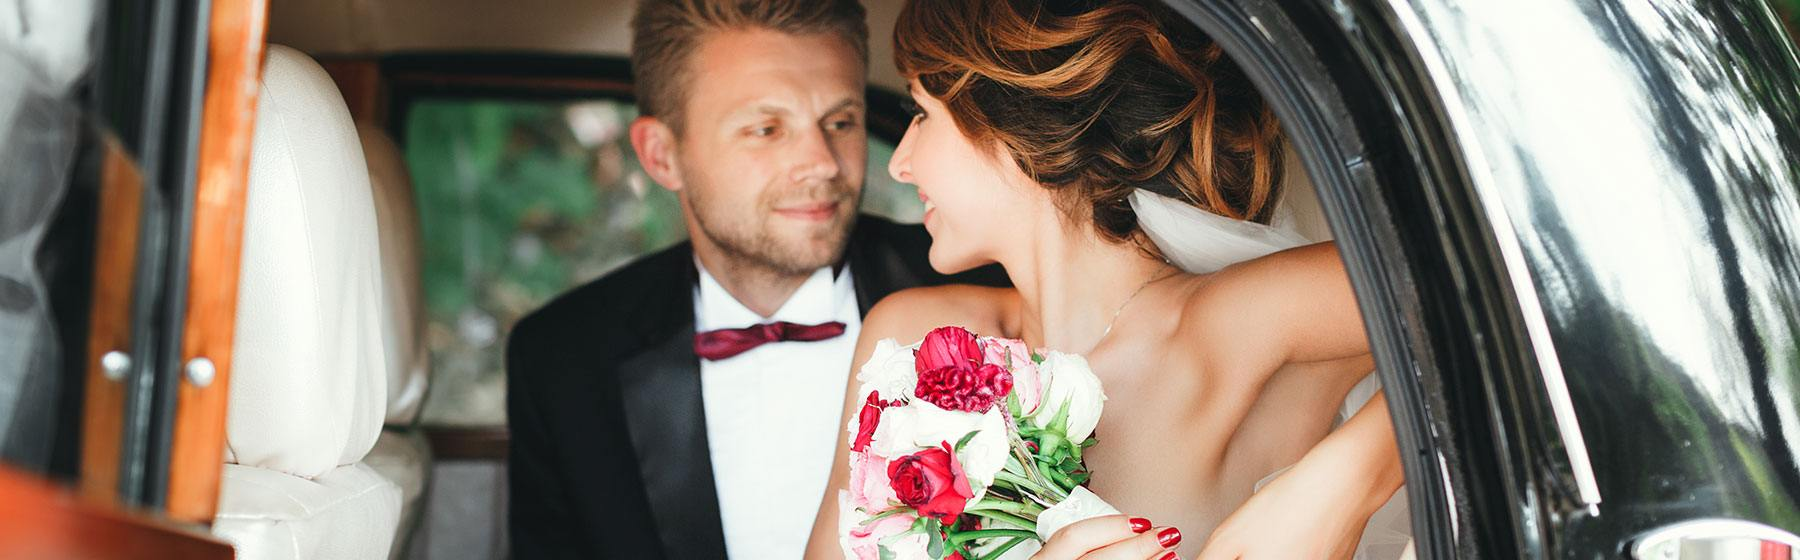 Weddings FAQs to Algonquinresort, Andrews By The Sea